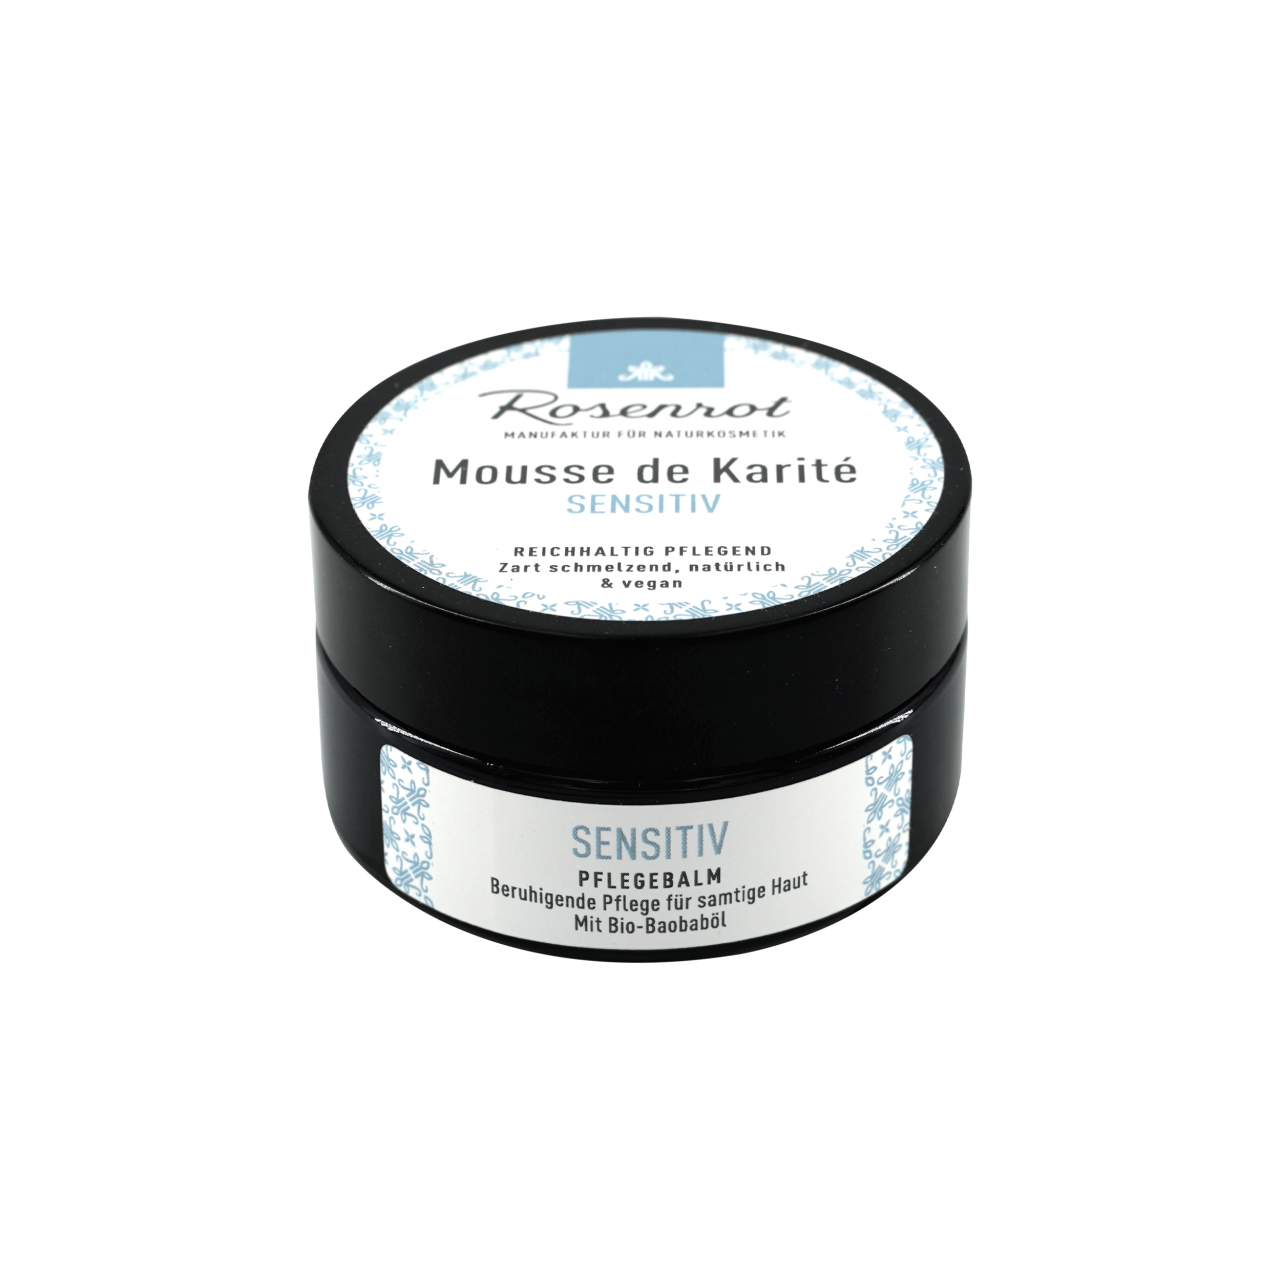 Mousse de Karité Sensitiv